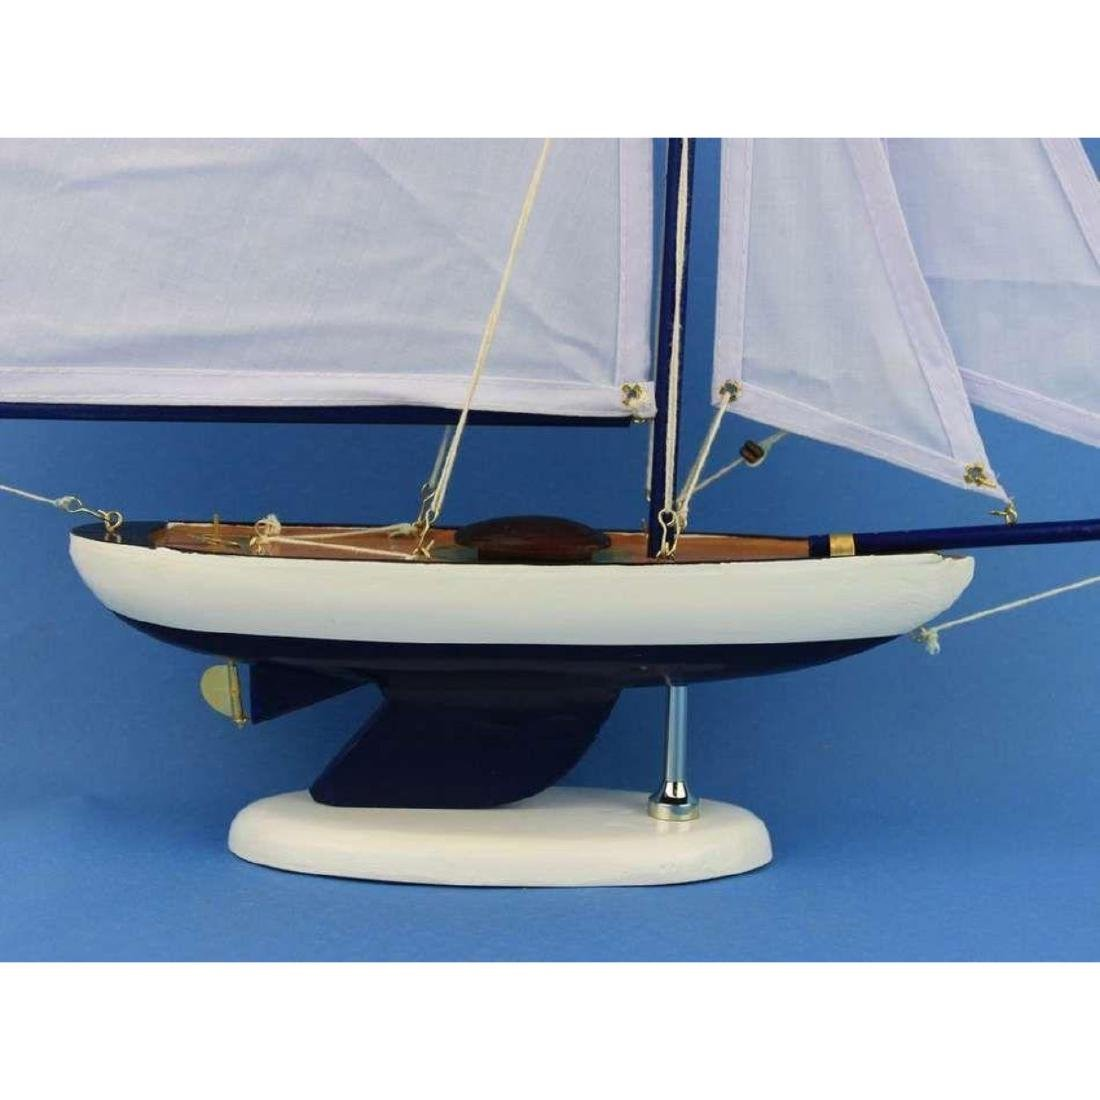 Wooden Bermuda Sloop Dark Blue - White Sails Model - 2